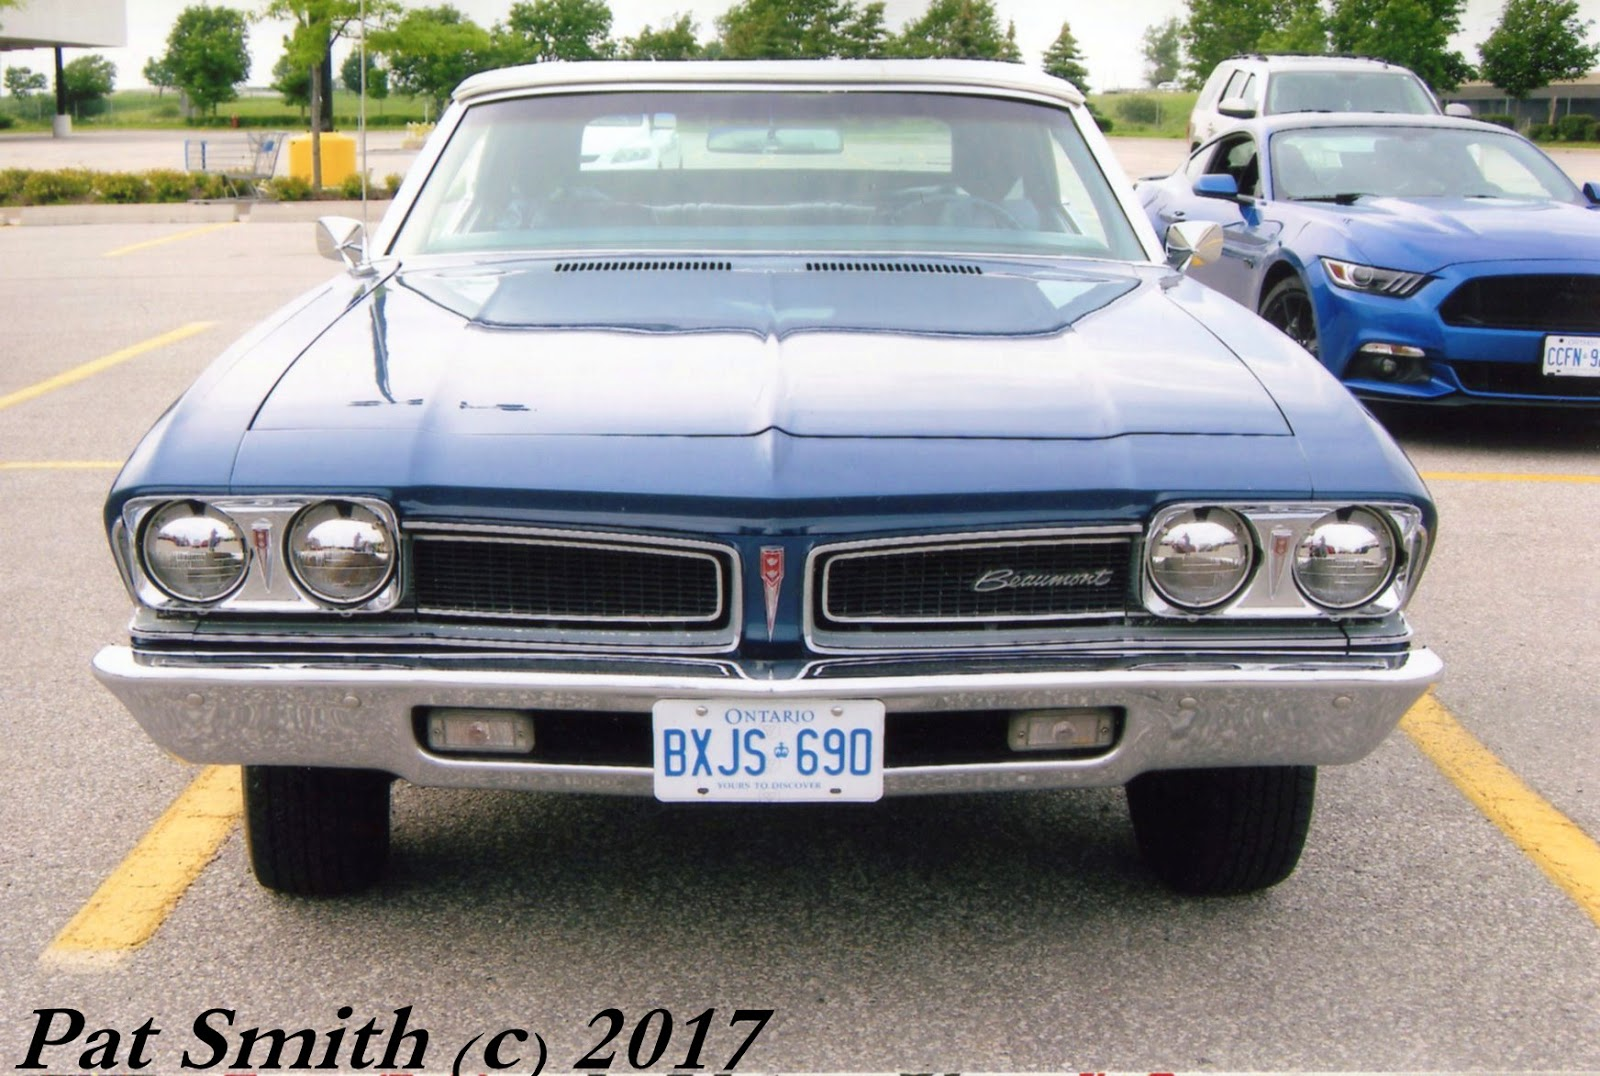 Canadian Classic 1969 Beaumont Convertible Phscollectorcarworld 1966 Impala Wiring Diagram